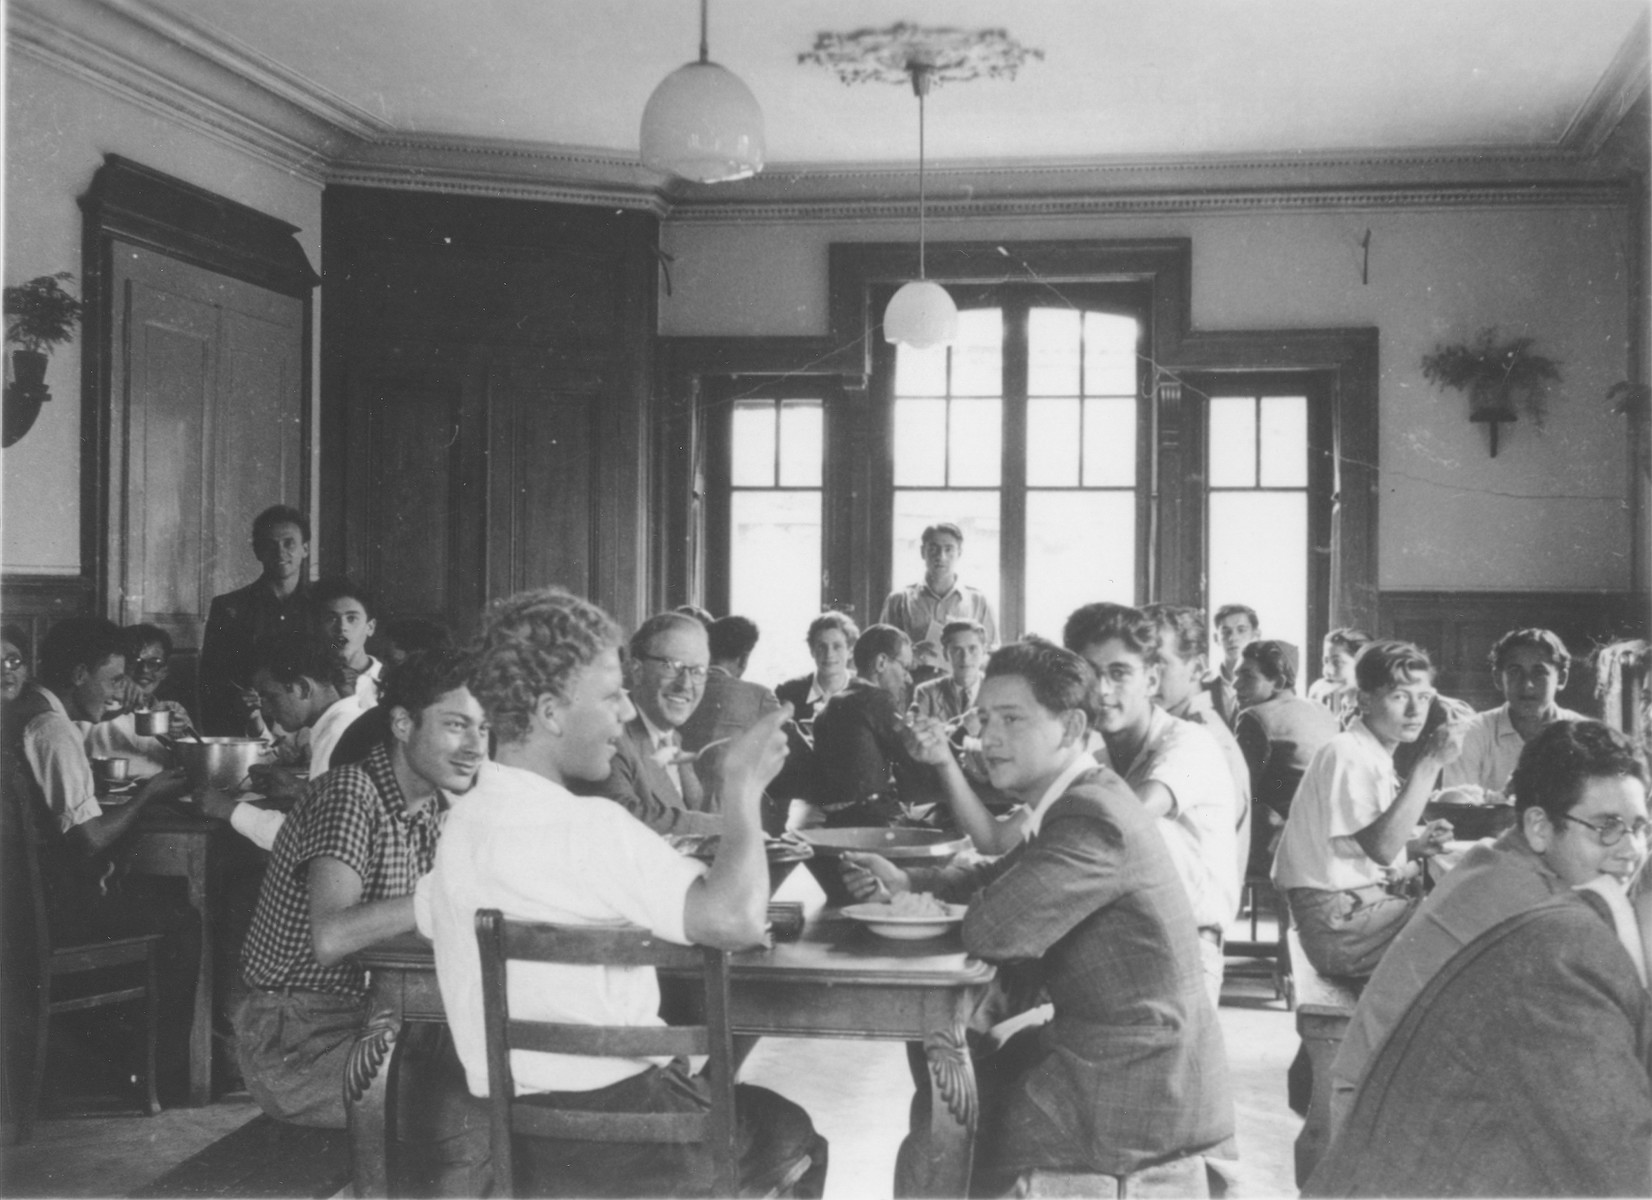 Residents of the Hôme de la Forêt children's home eat a meal in the dining hall.